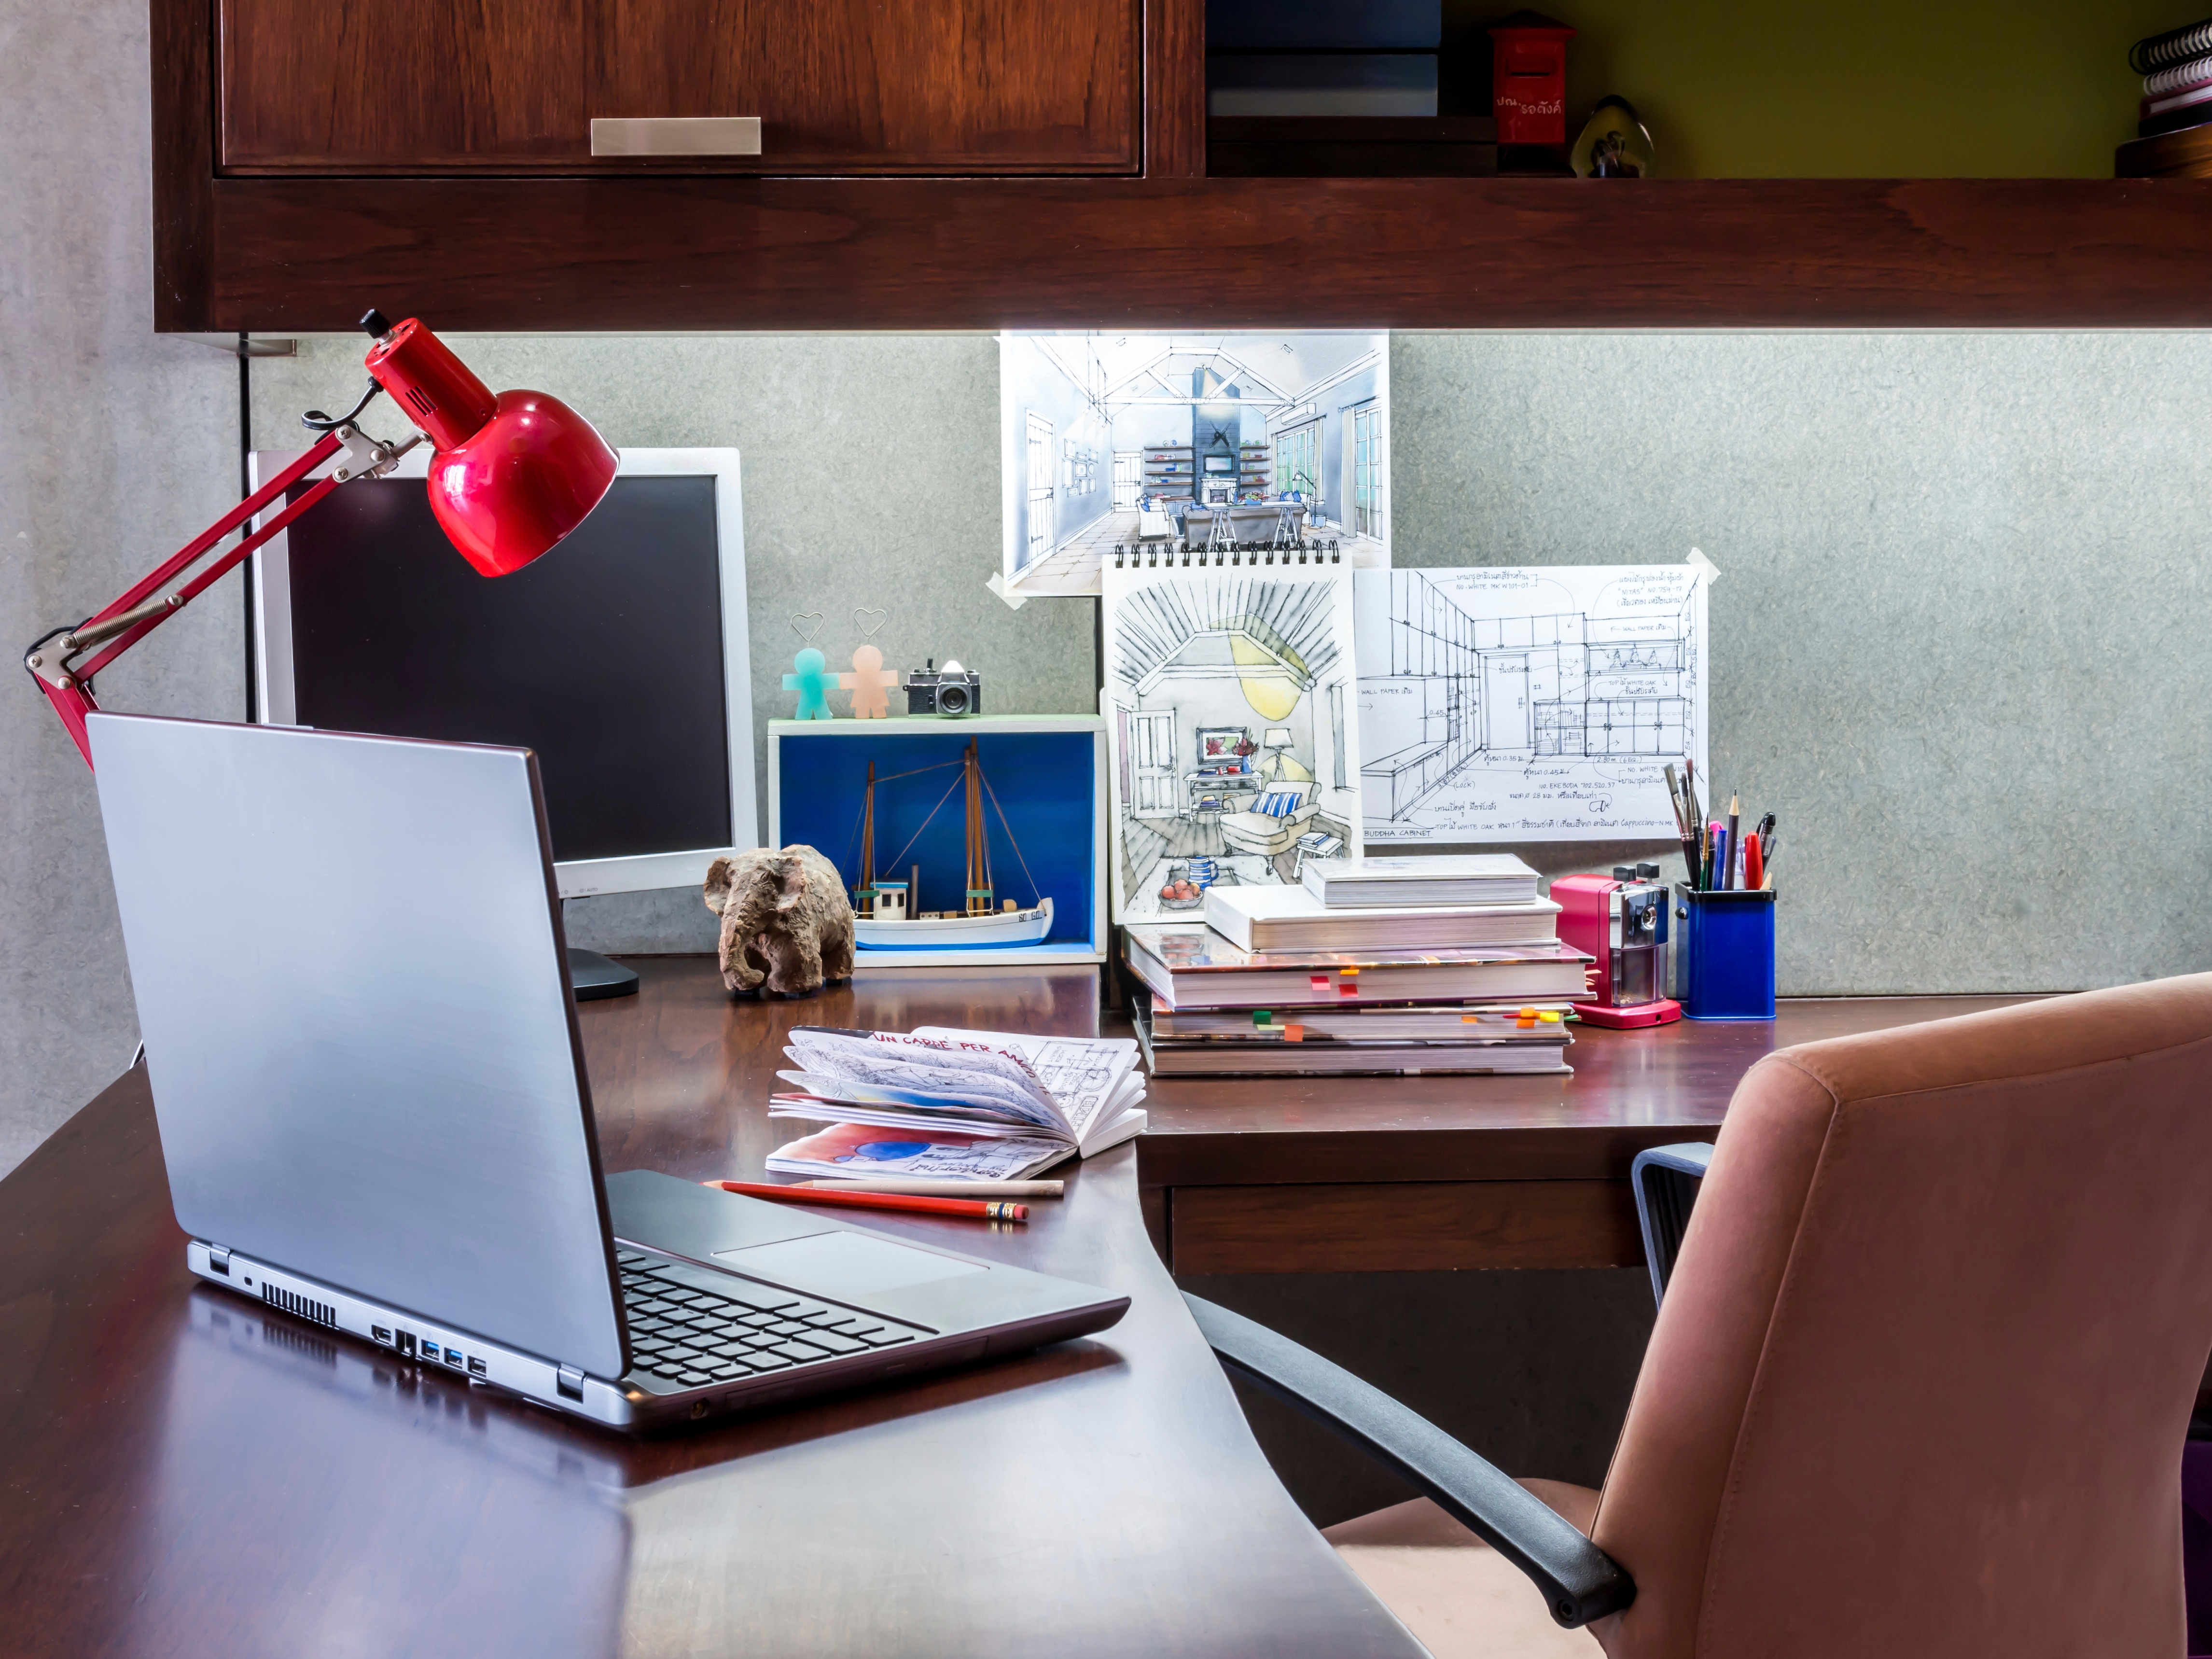 lighting is crucial for upgrading your cubicle work space